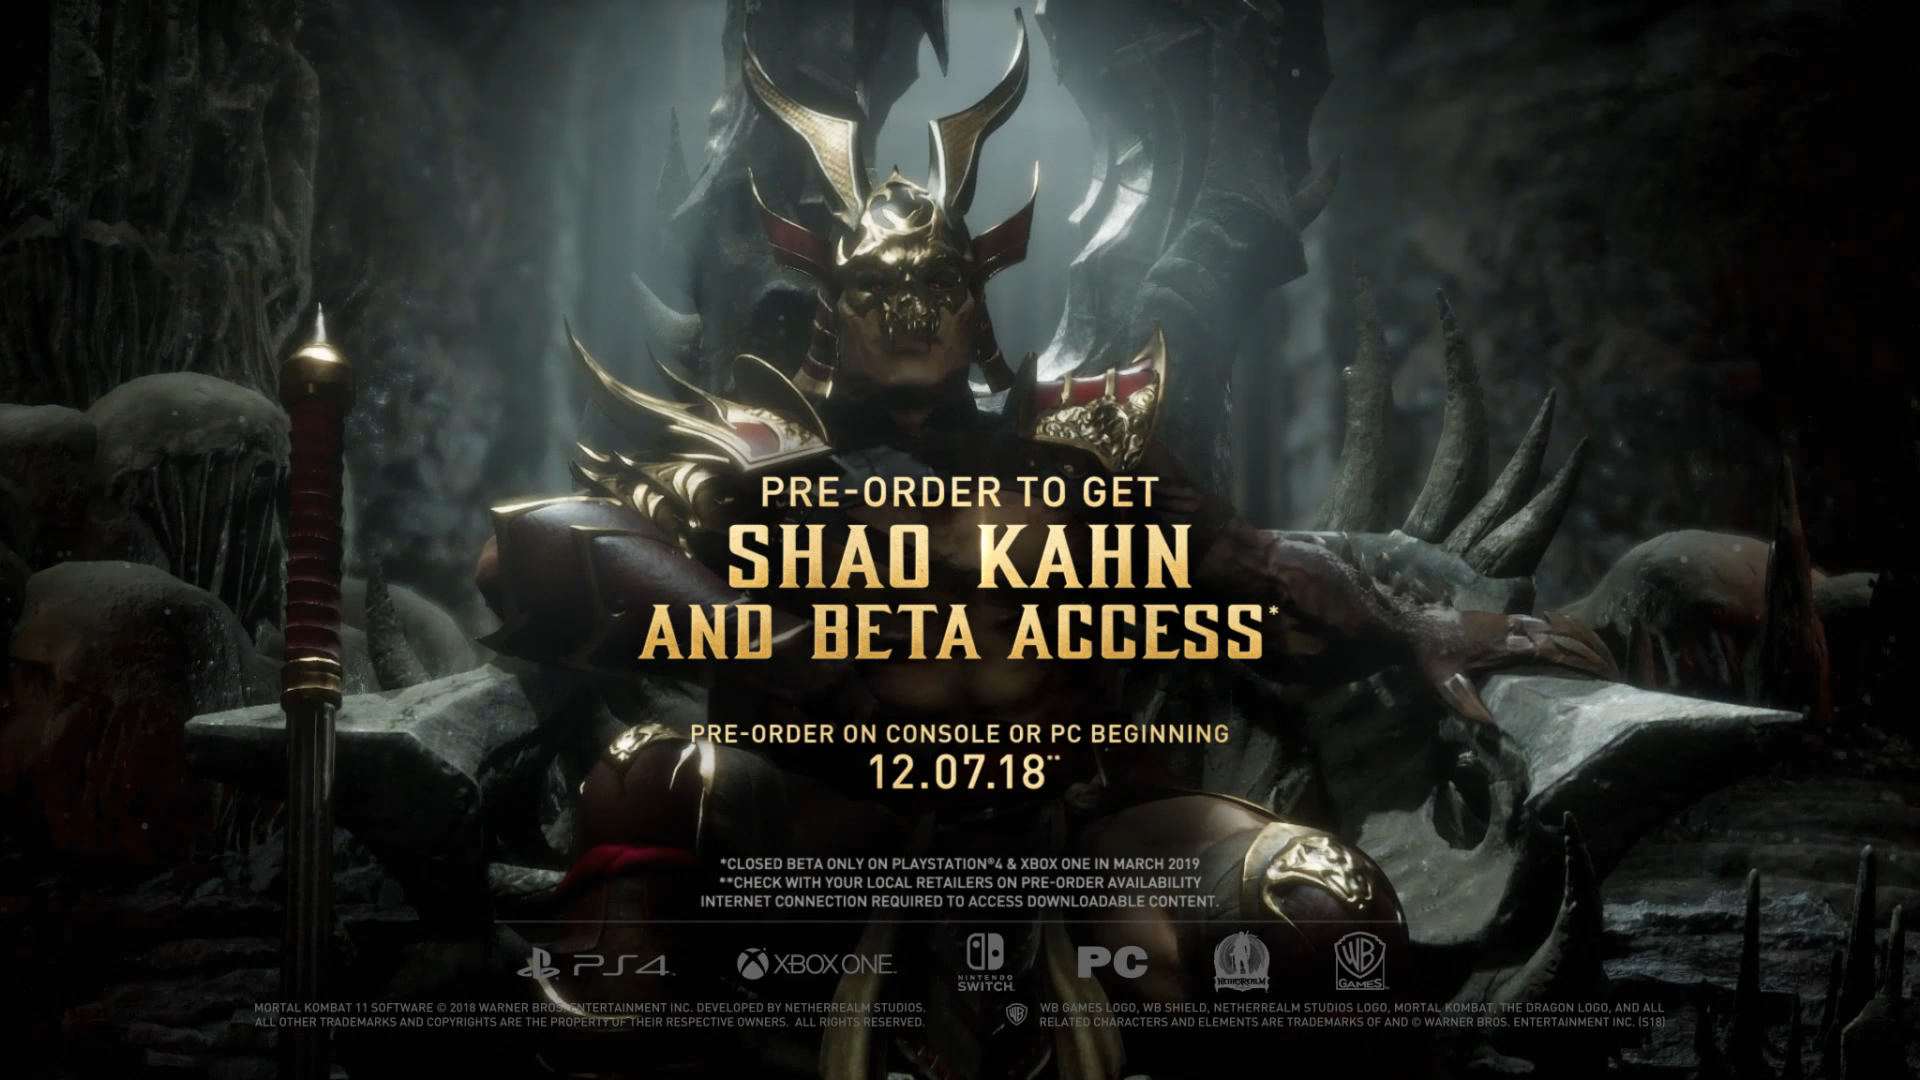 Mortal Kombat 11 Is Coming To Multiple Platforms, Including